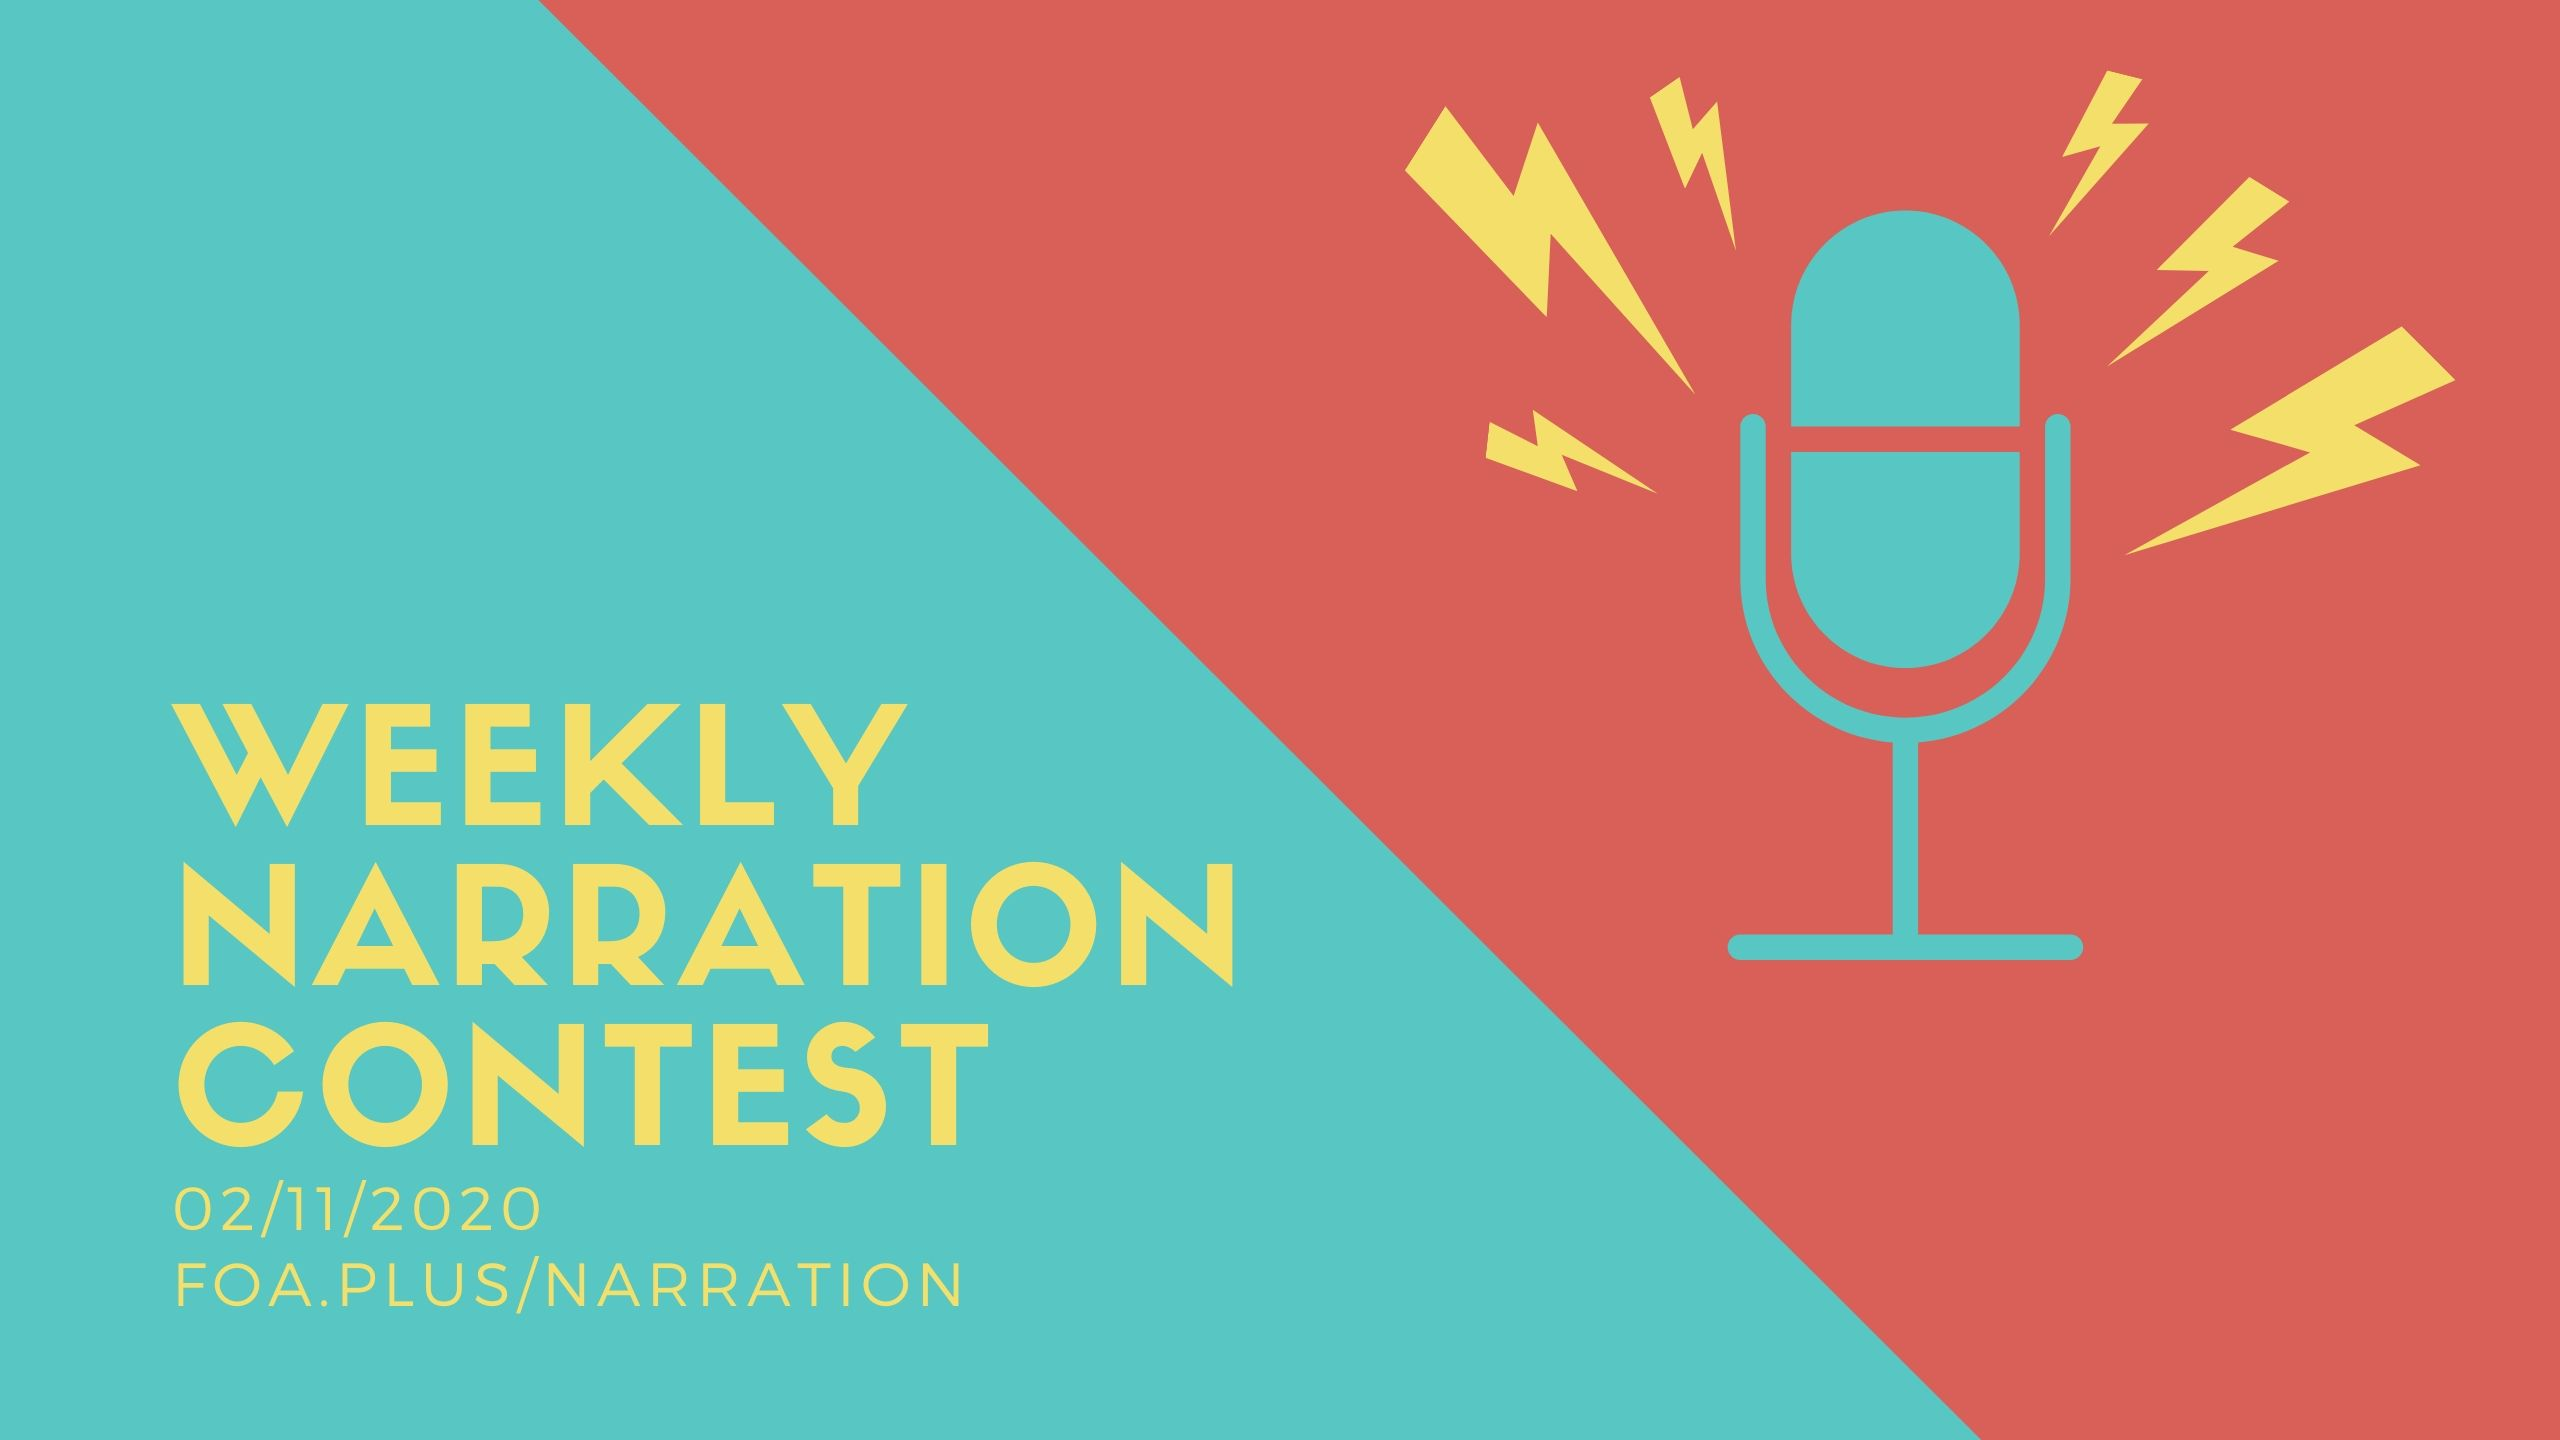 Weekly Narration Contest   02/11-02/18/2020